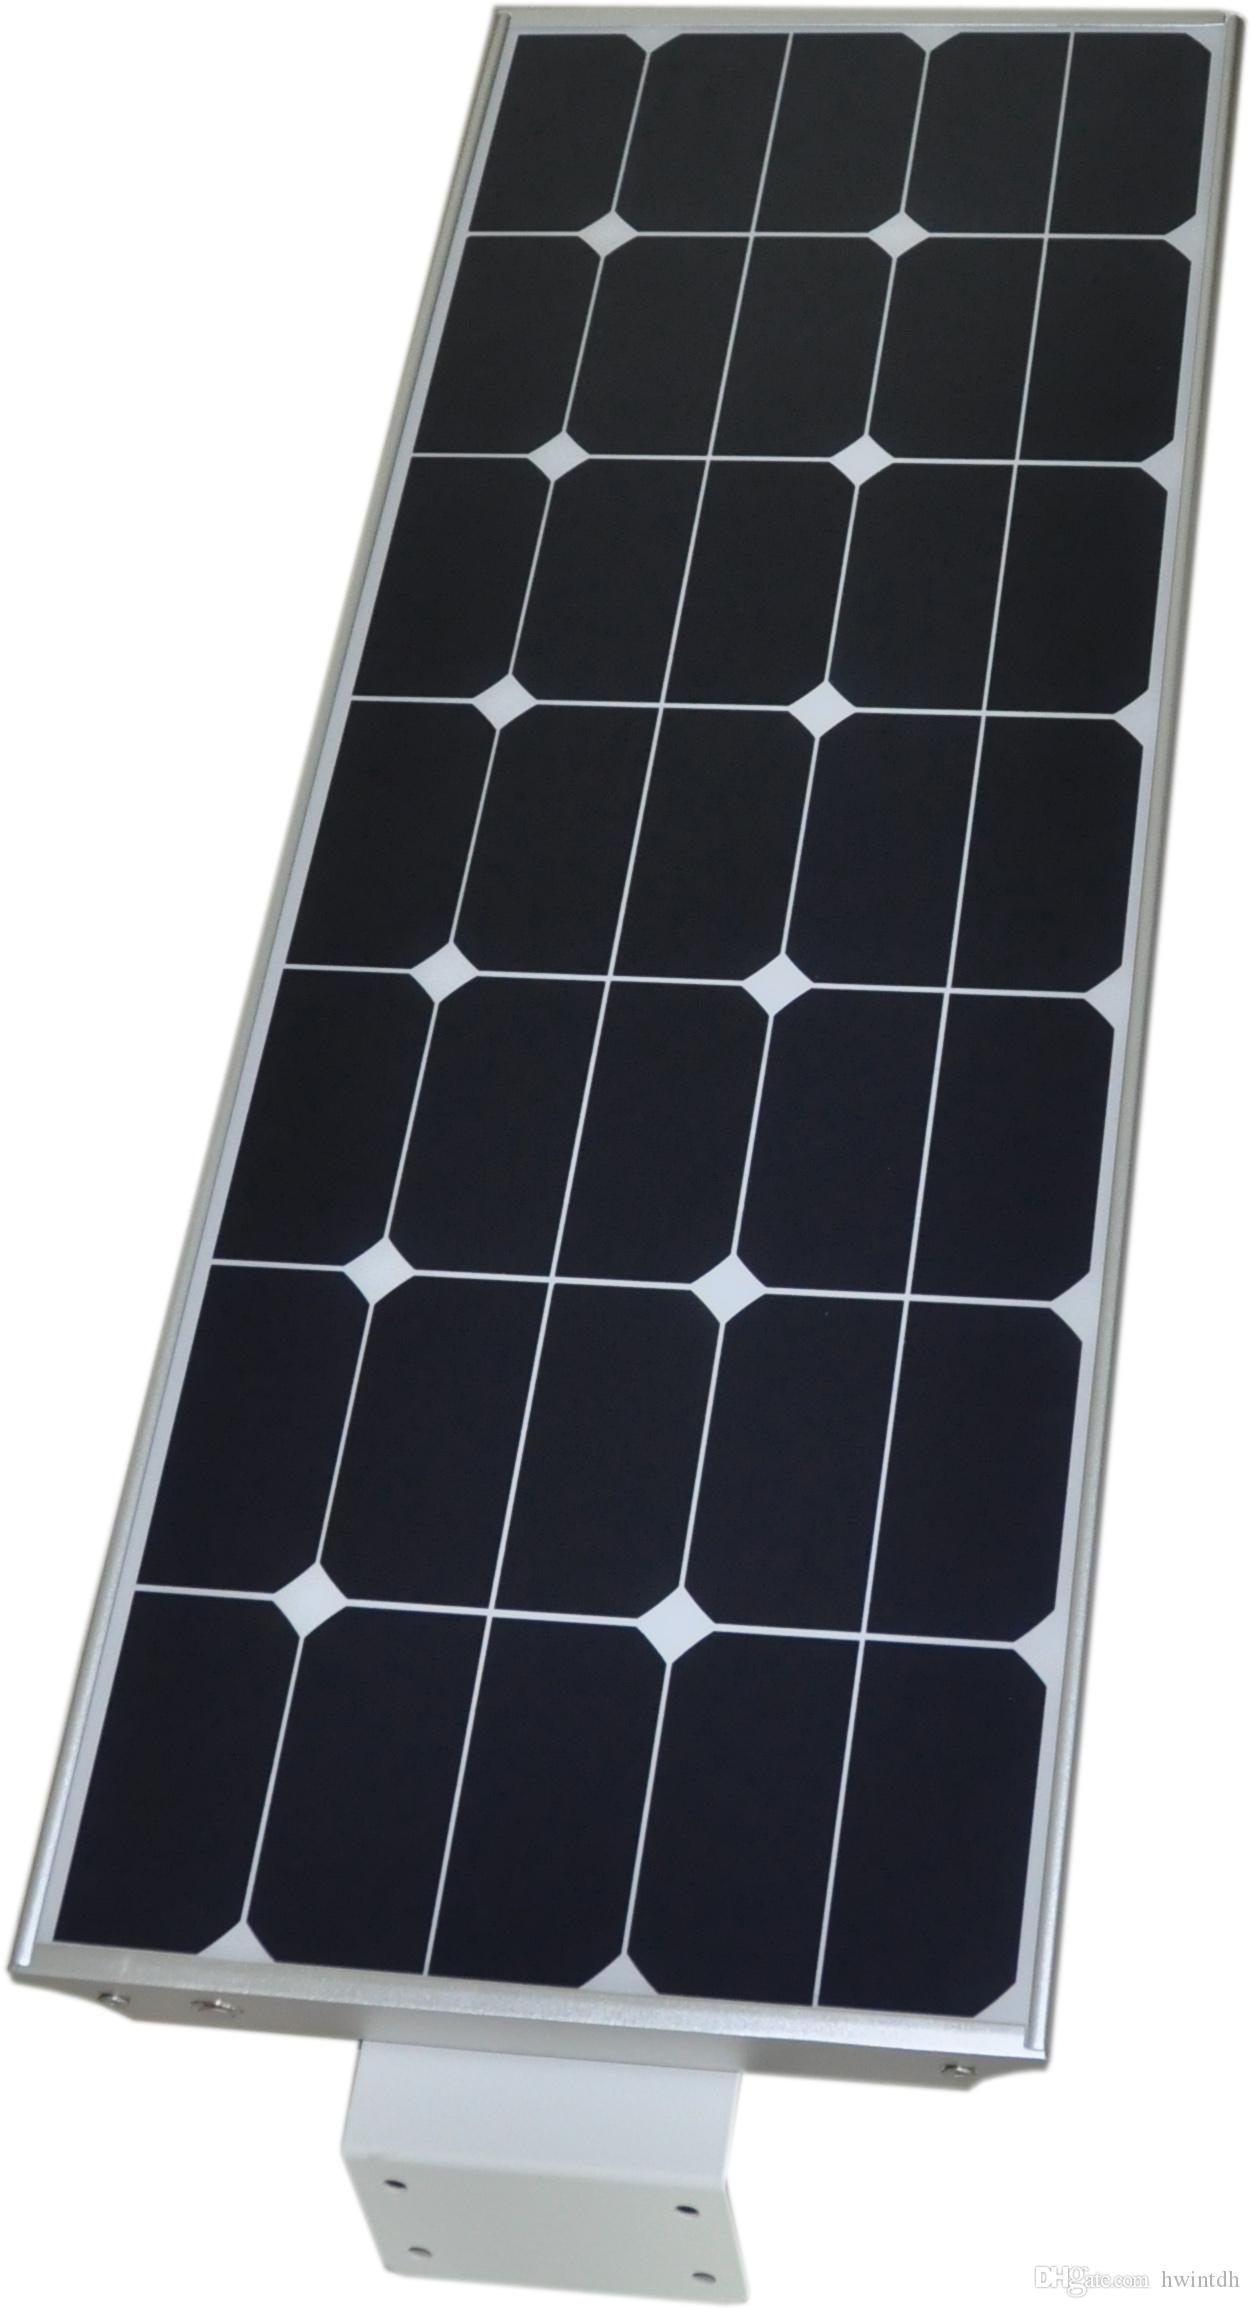 Grohandel all in one photosynthetic integrated solar led all in one photosynthetic integrated solar led straenleuchte 30w led lampe parisarafo Choice Image